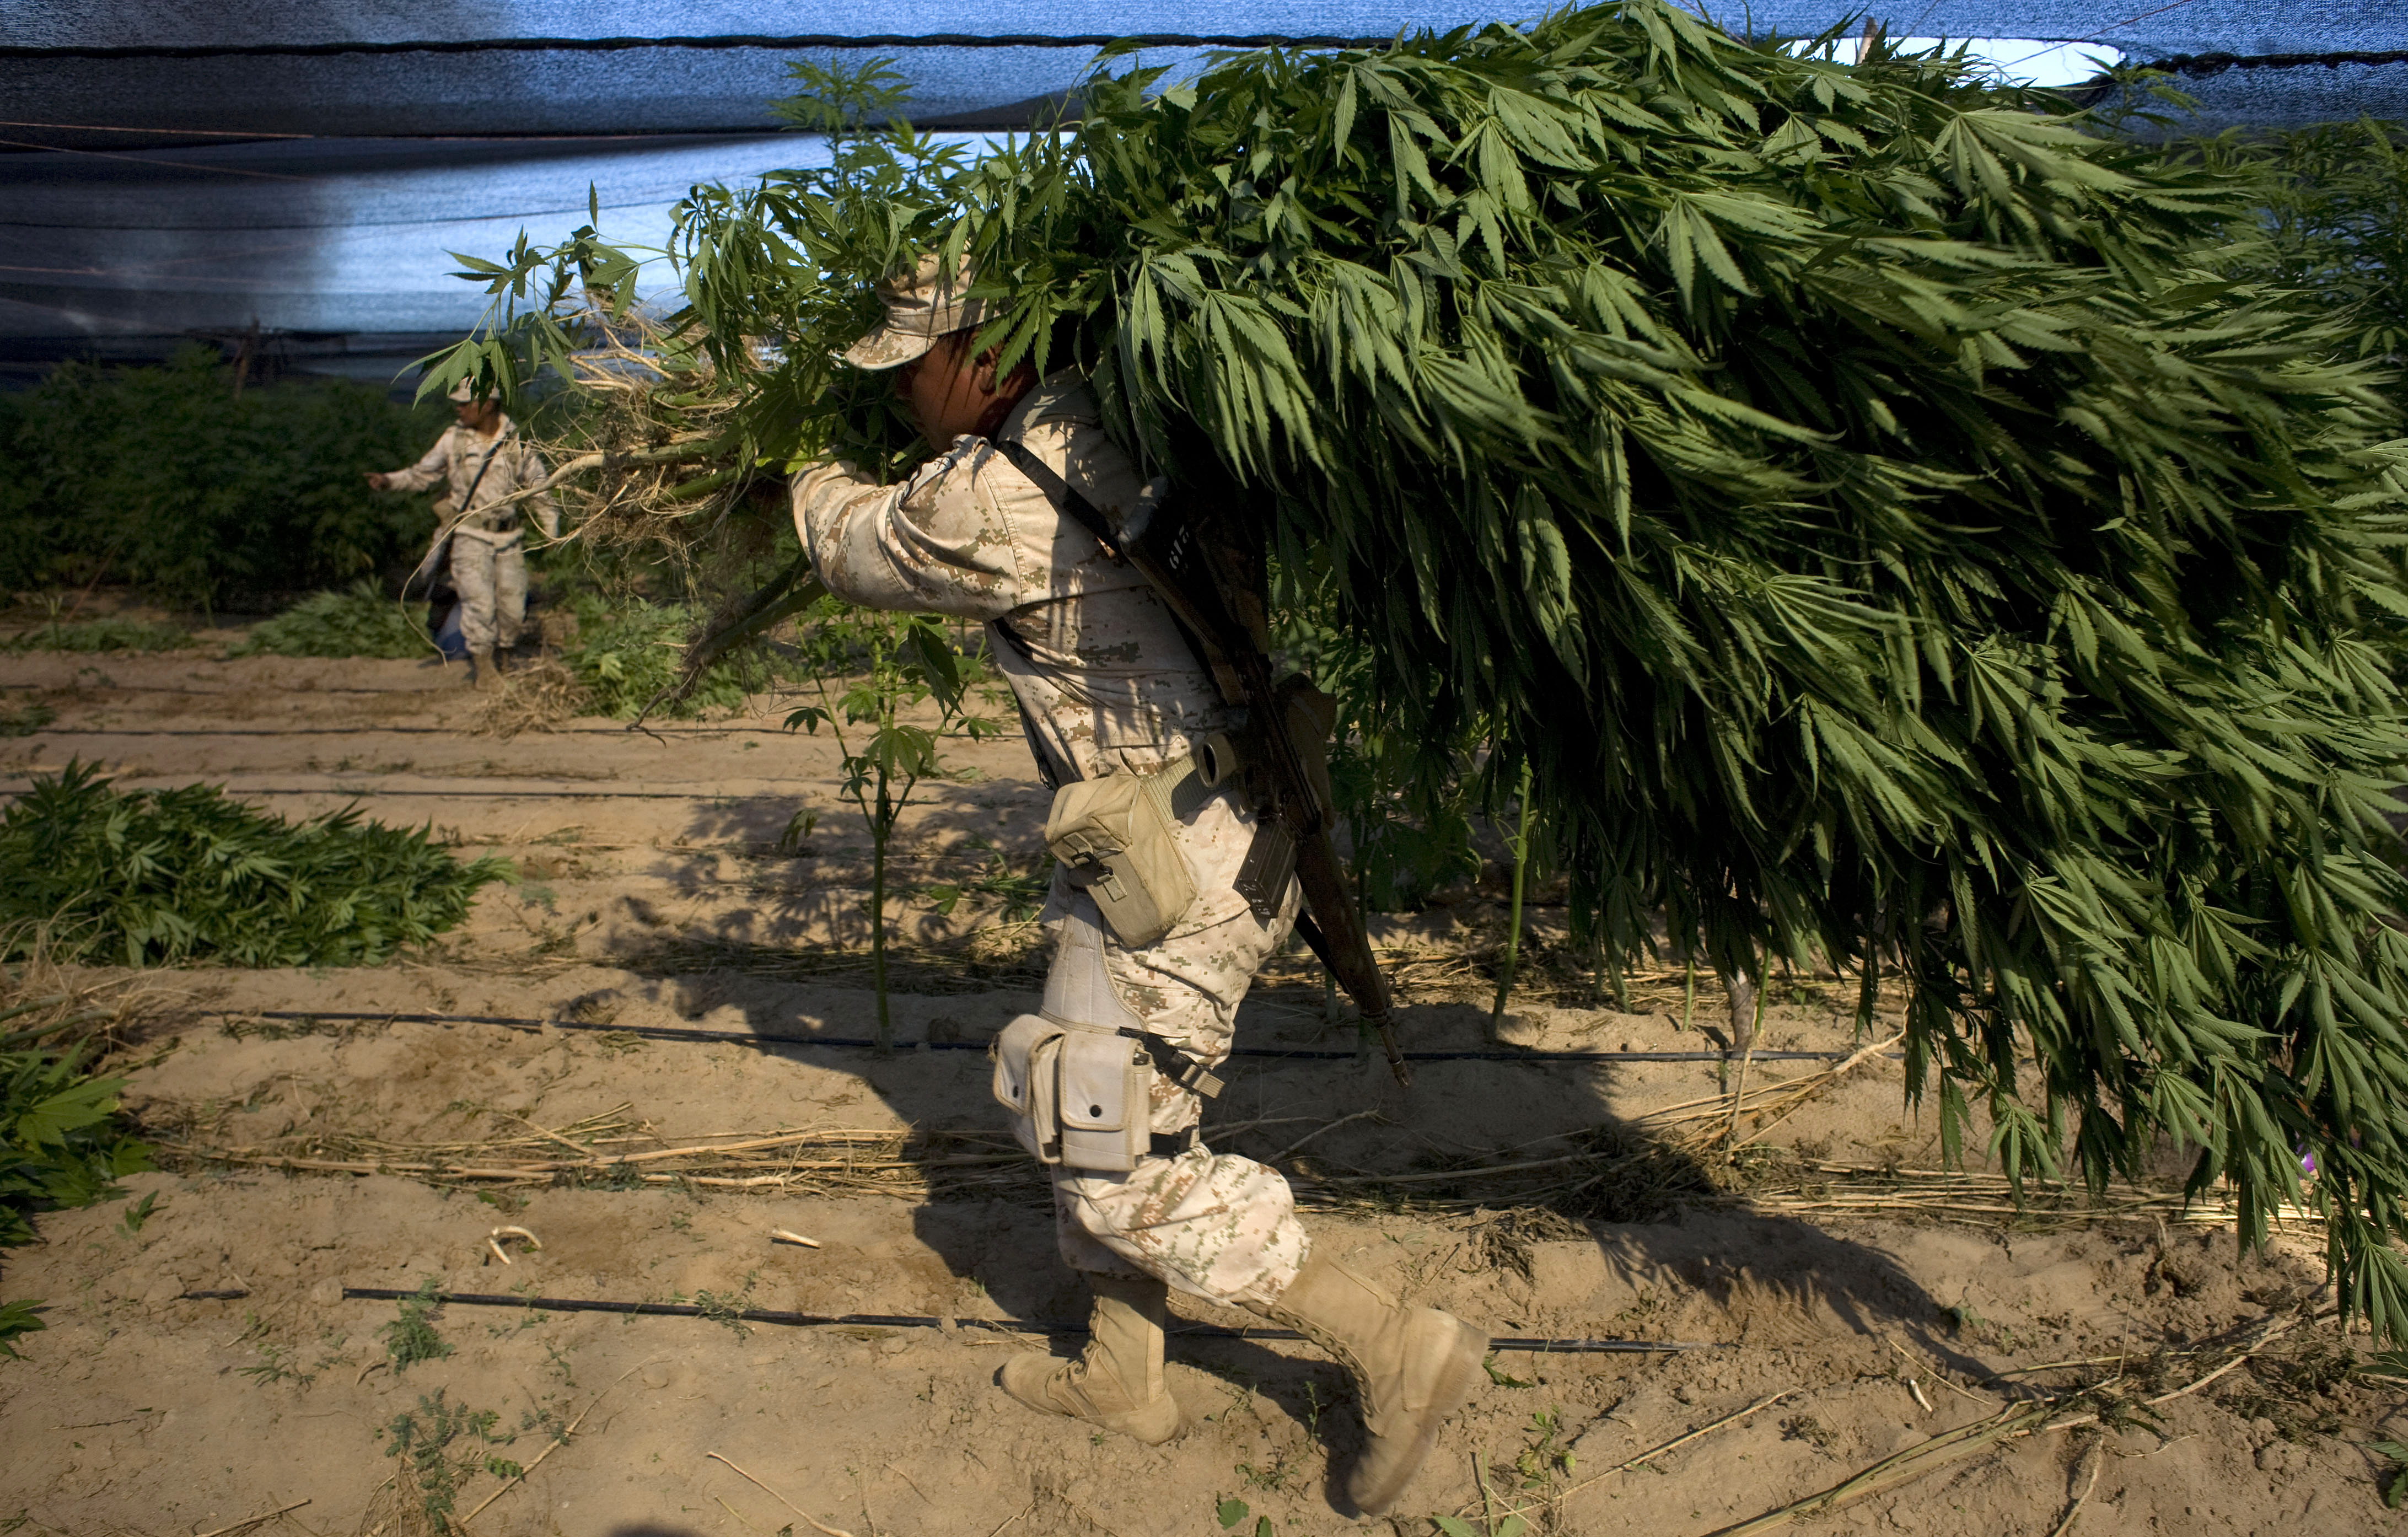 Largest illegal operation, Mexico